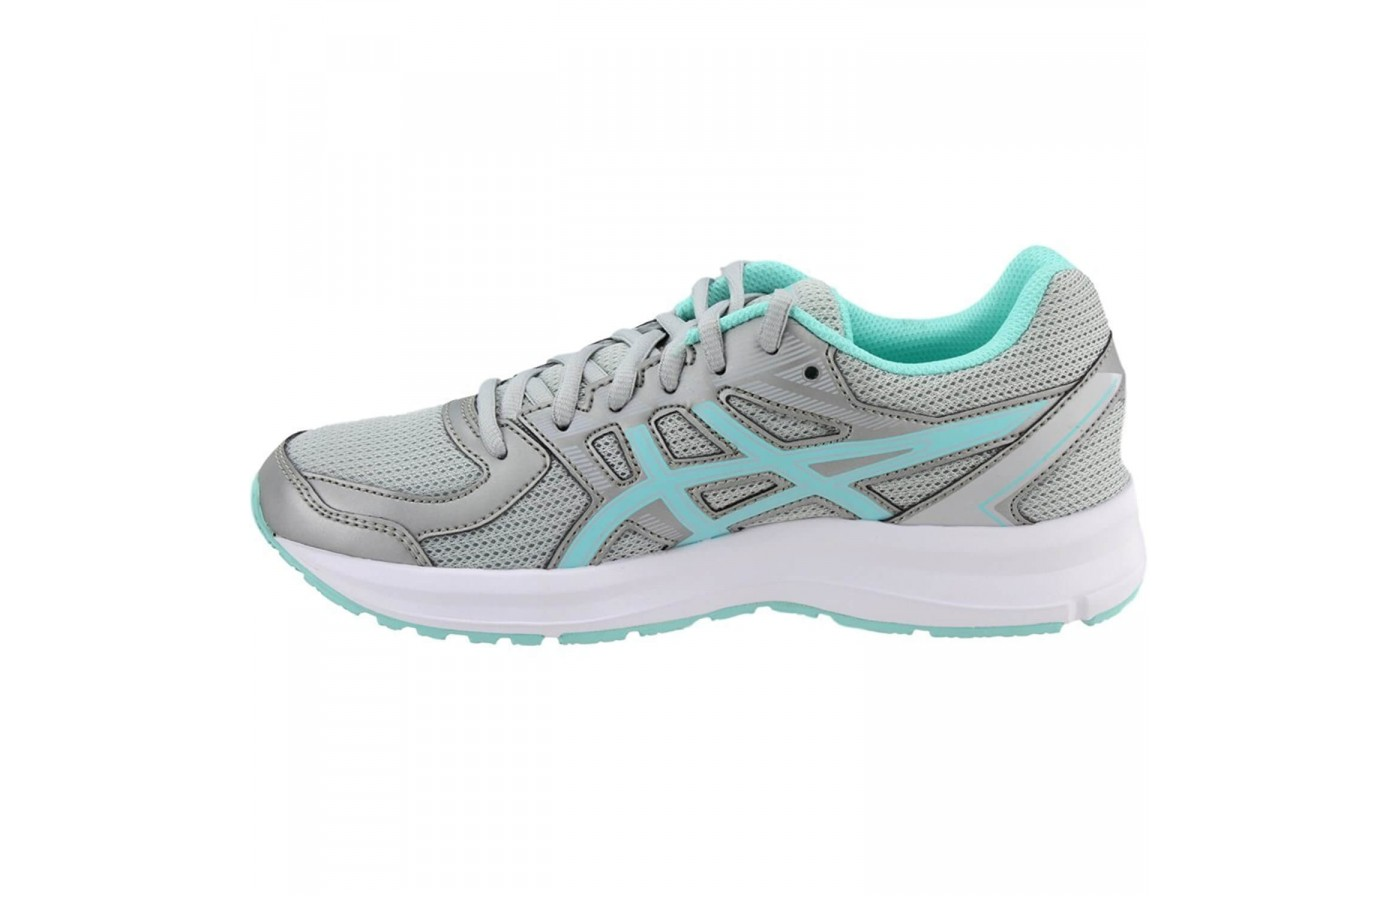 The Jolt is designed to add support and stability for runners.